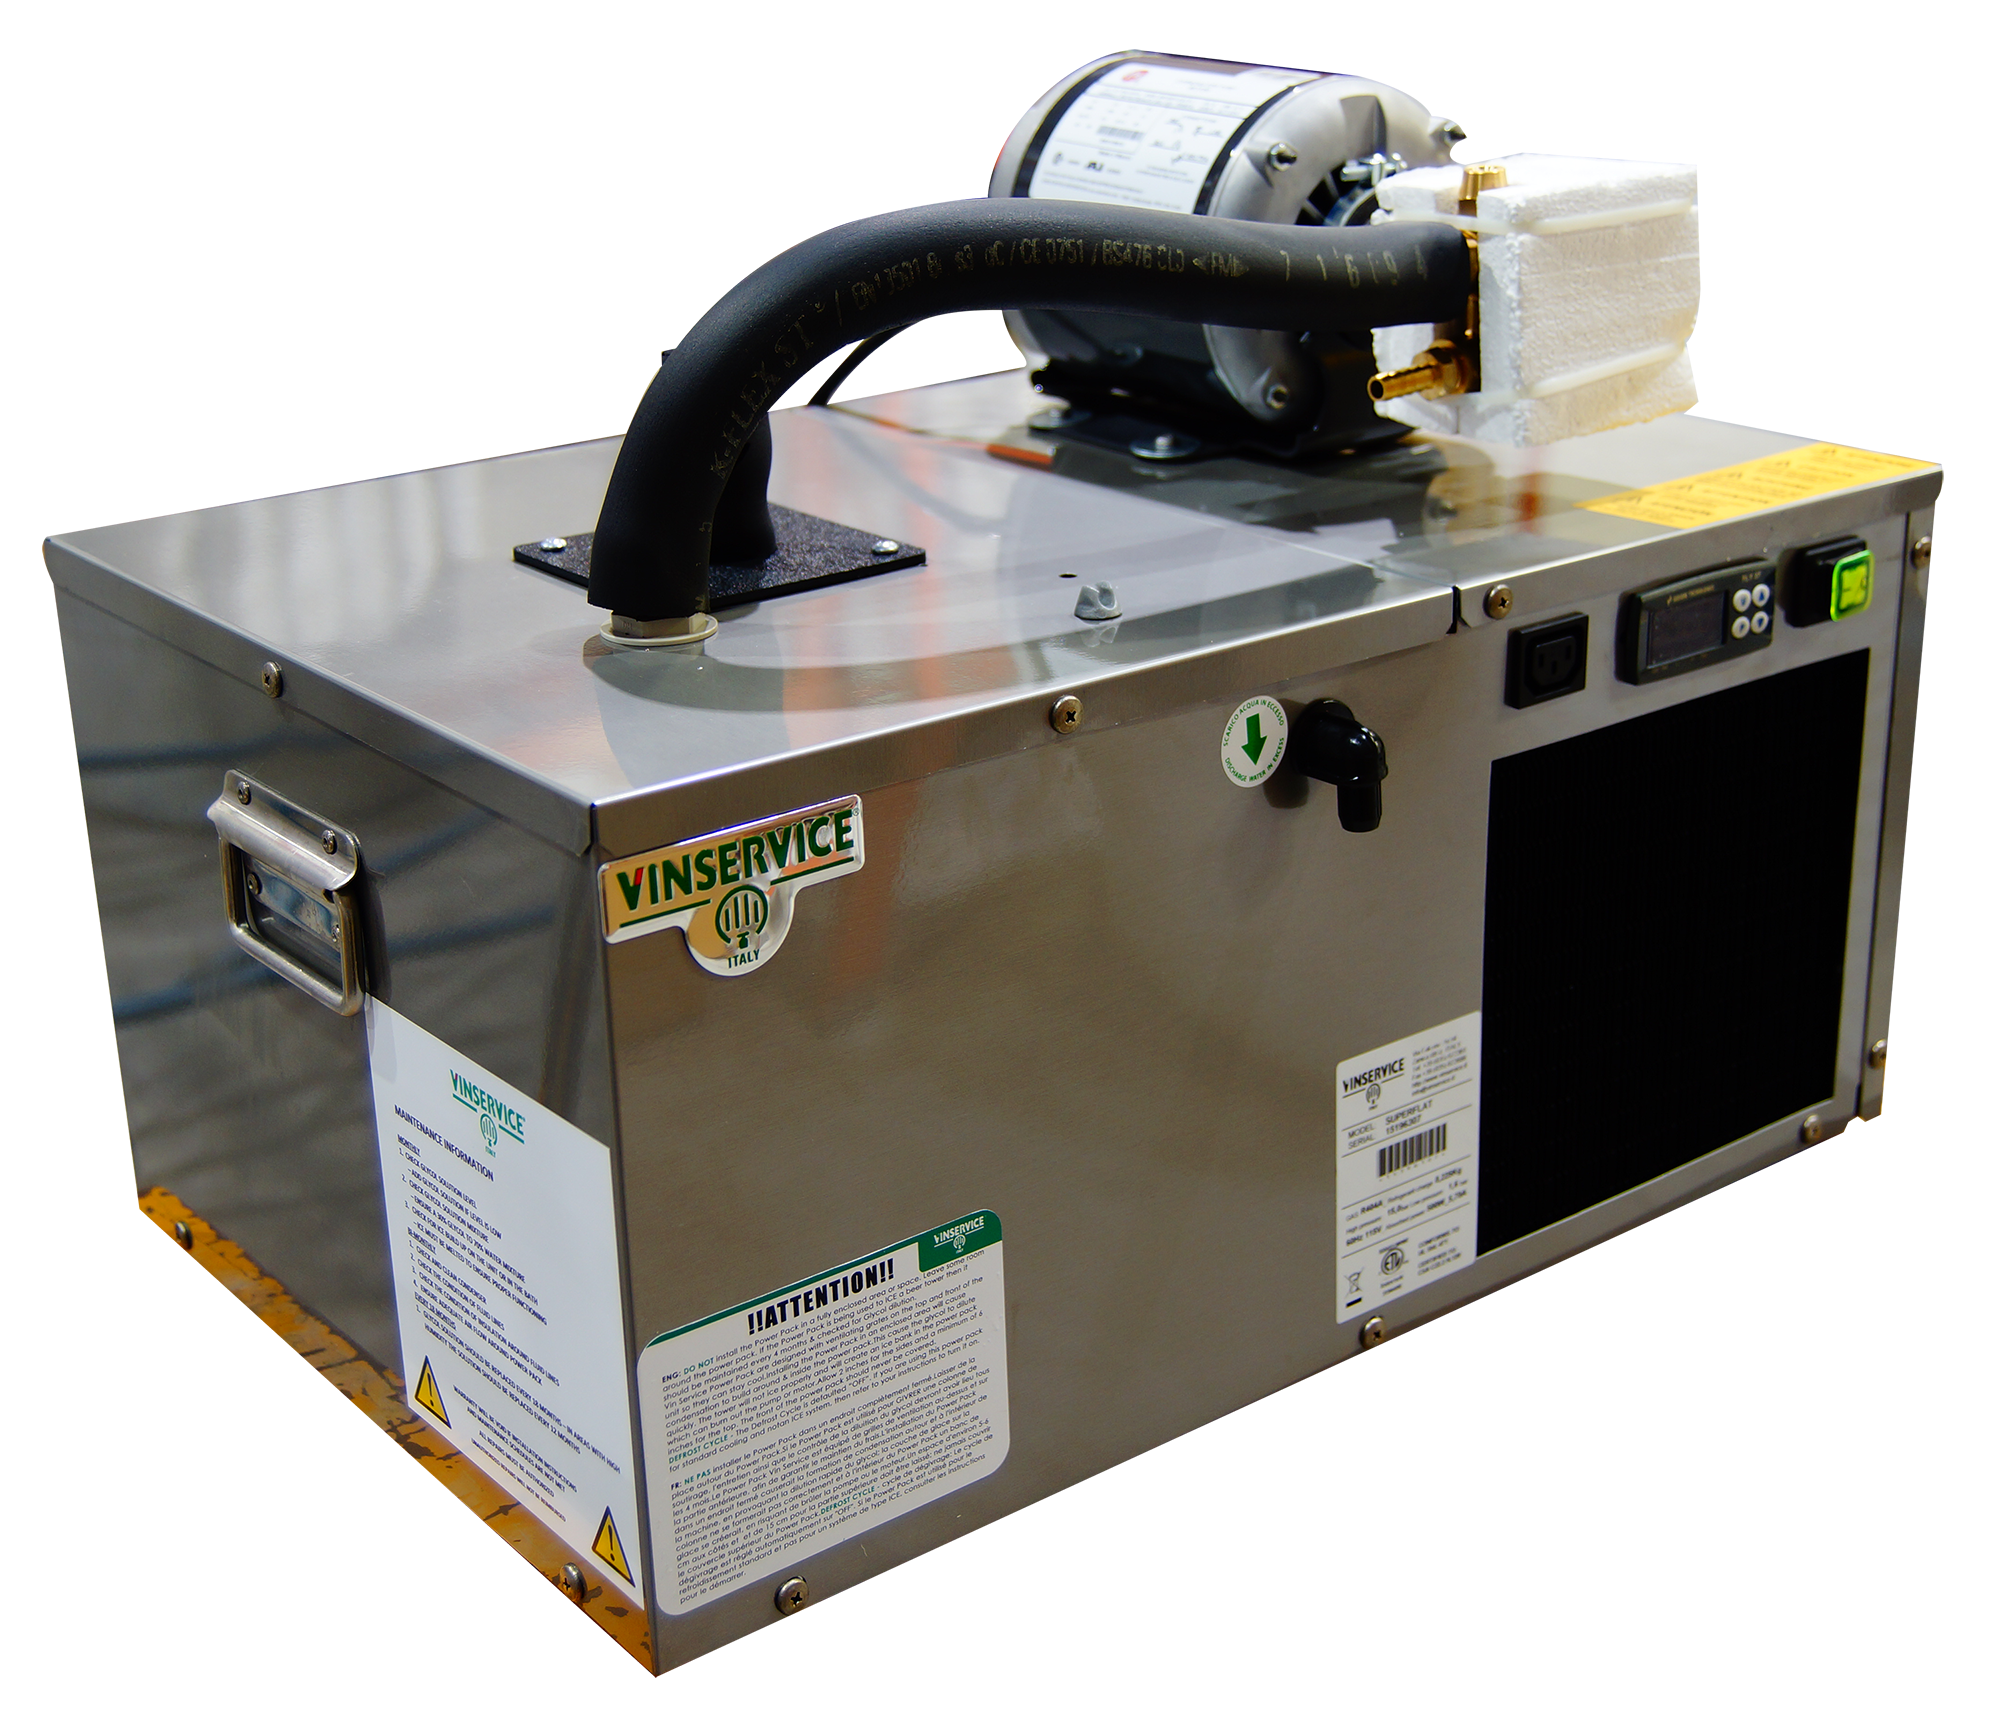 Vin Service Glycol Power Pack - 1/2 HP Super Flat Ultra w/ Pump and Motor 75' Length - 2800 BTU